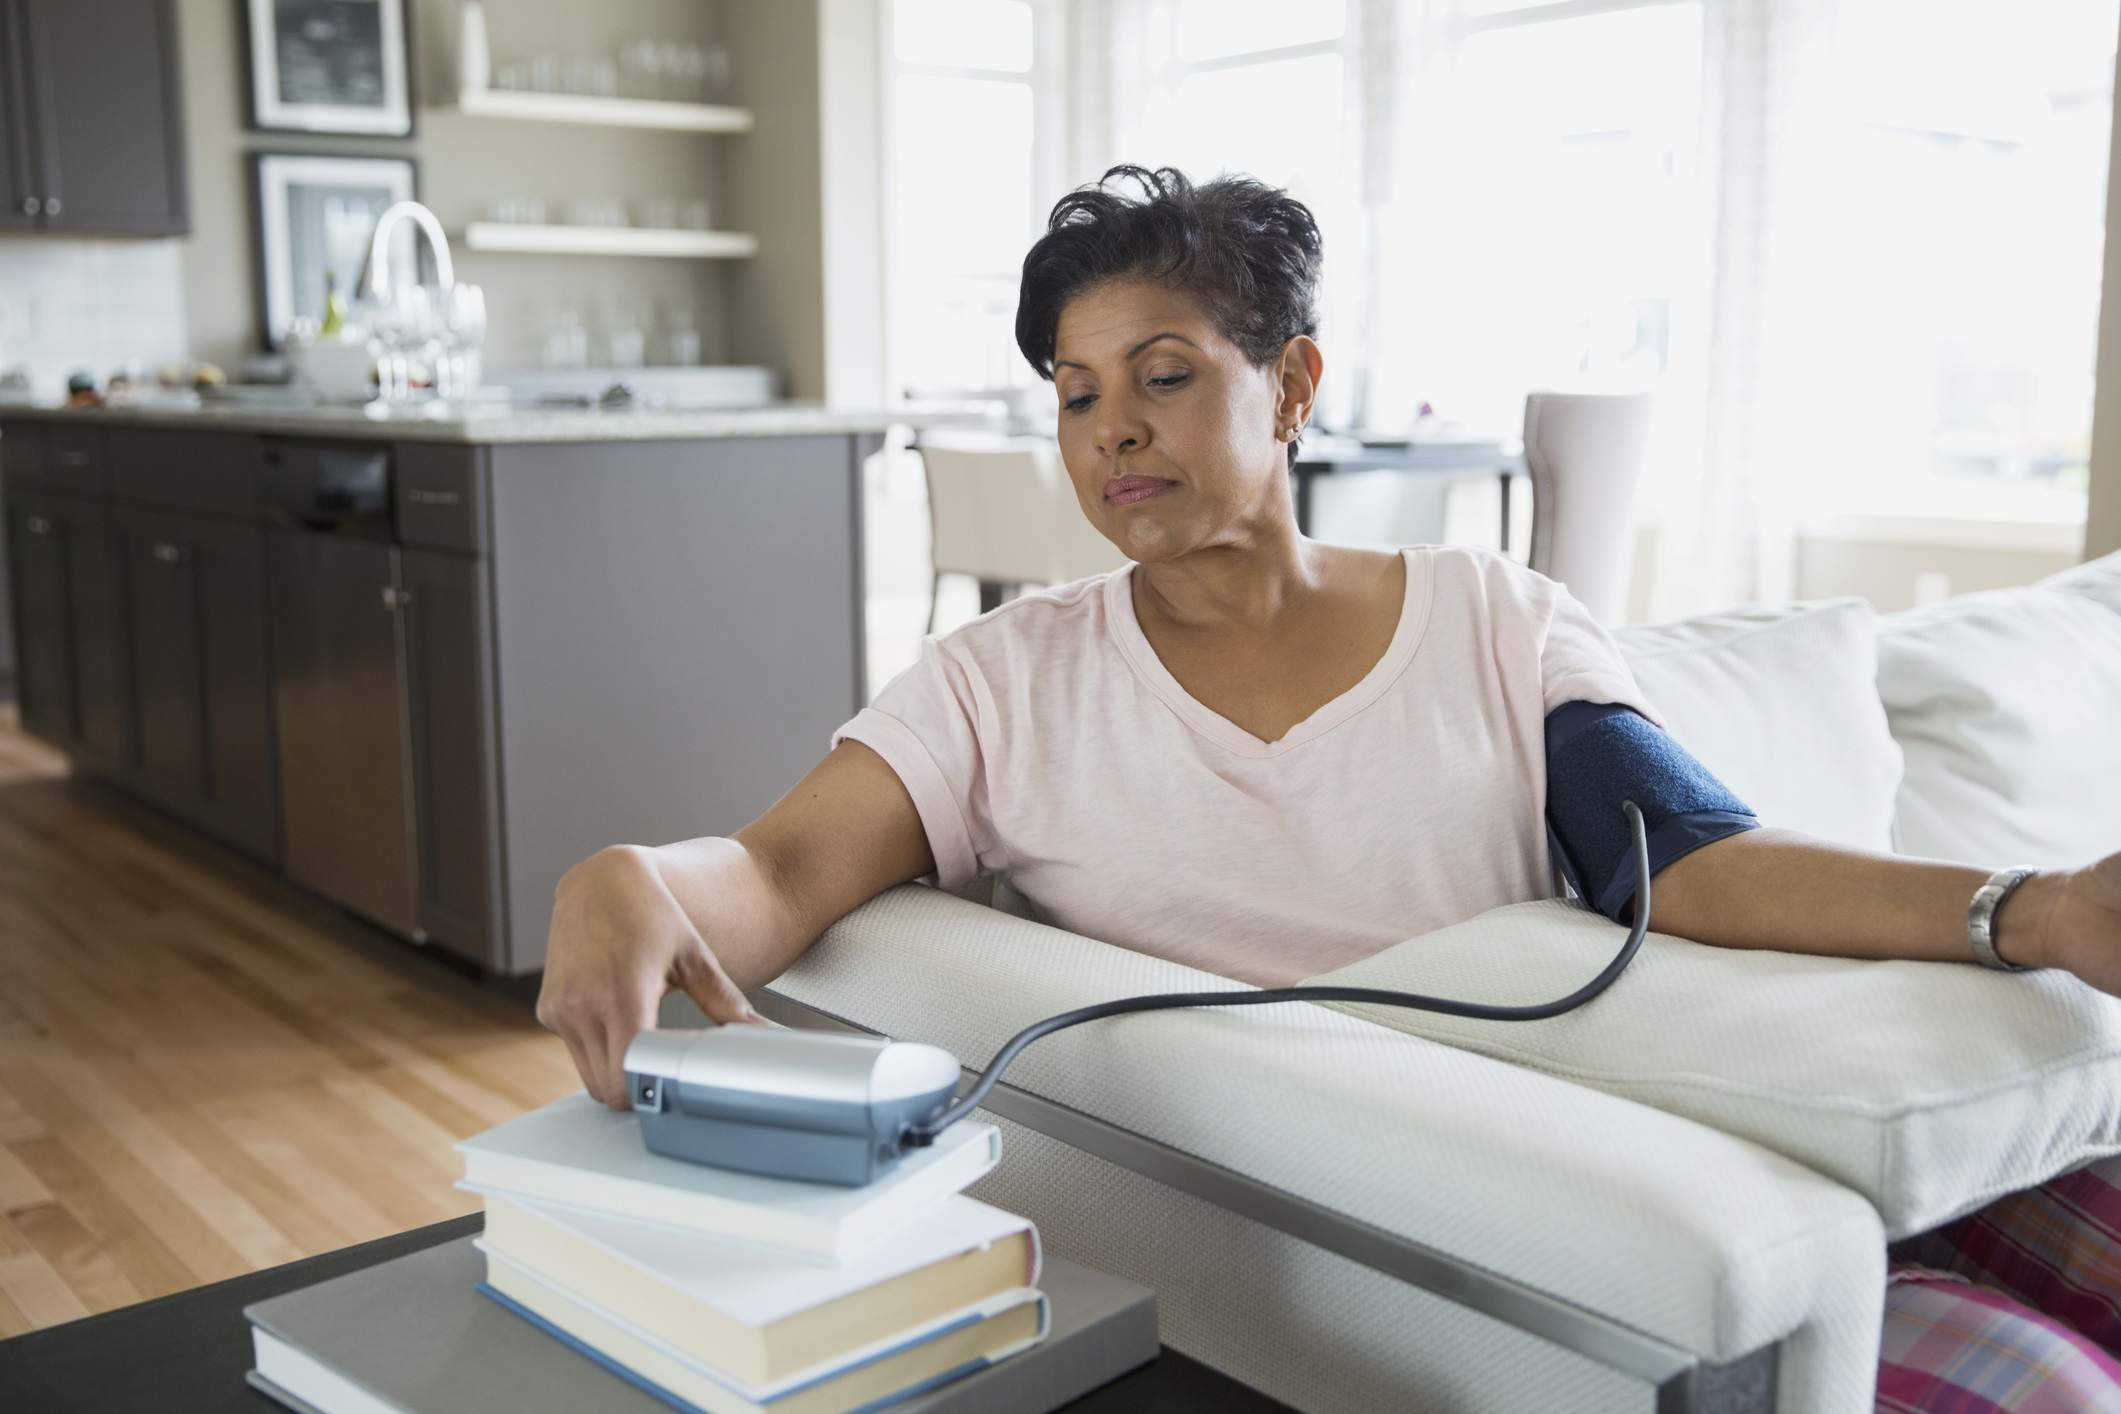 a woman checking blood pressure in living room